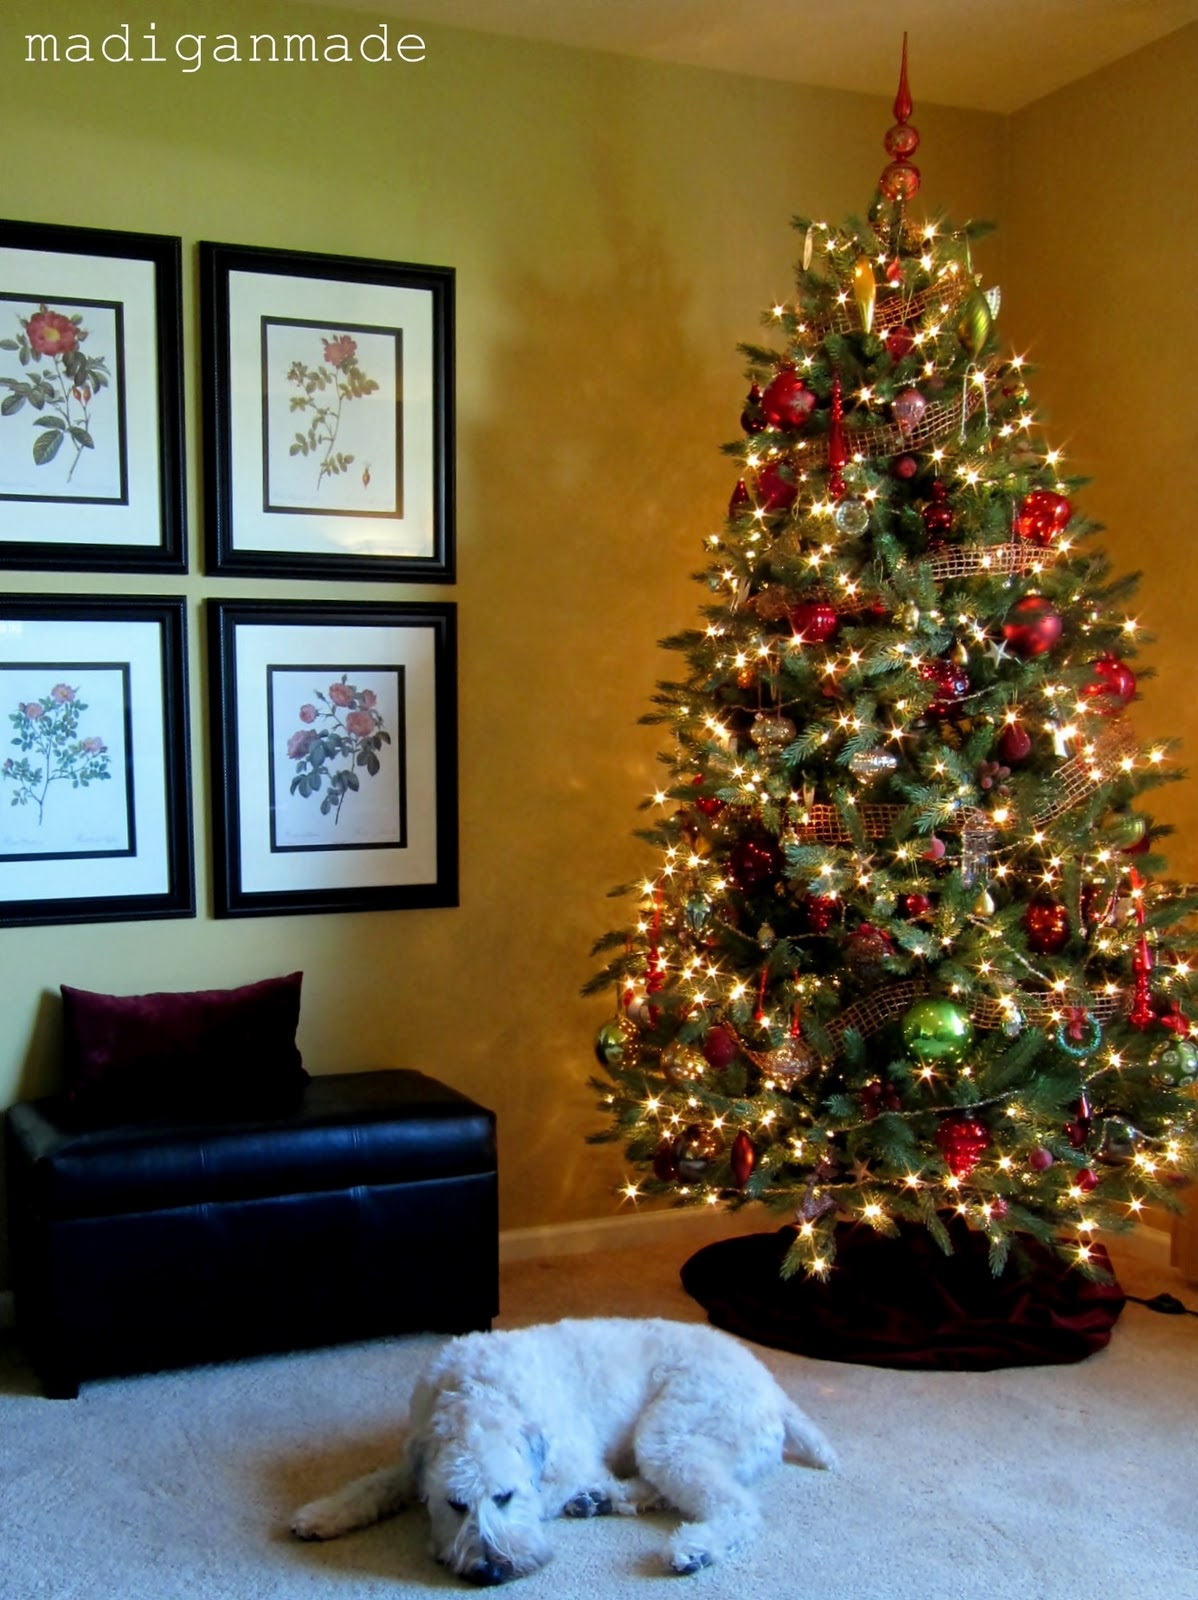 Simple steps for holiday decorating a house tour rosyscription publicscrutiny